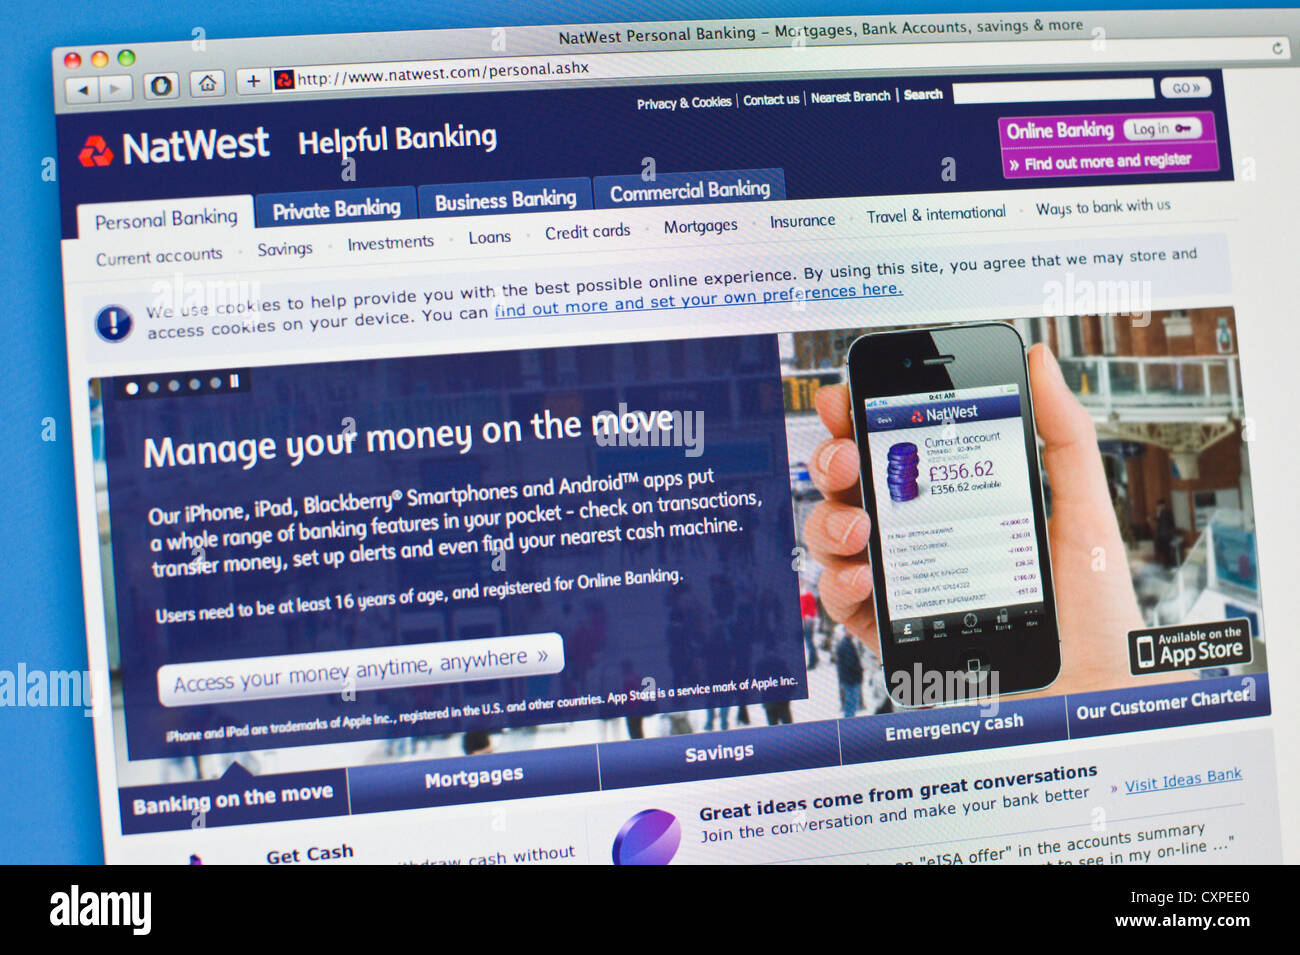 Natwest Online Banking Stock Photos & Natwest Online Banking Stock ...